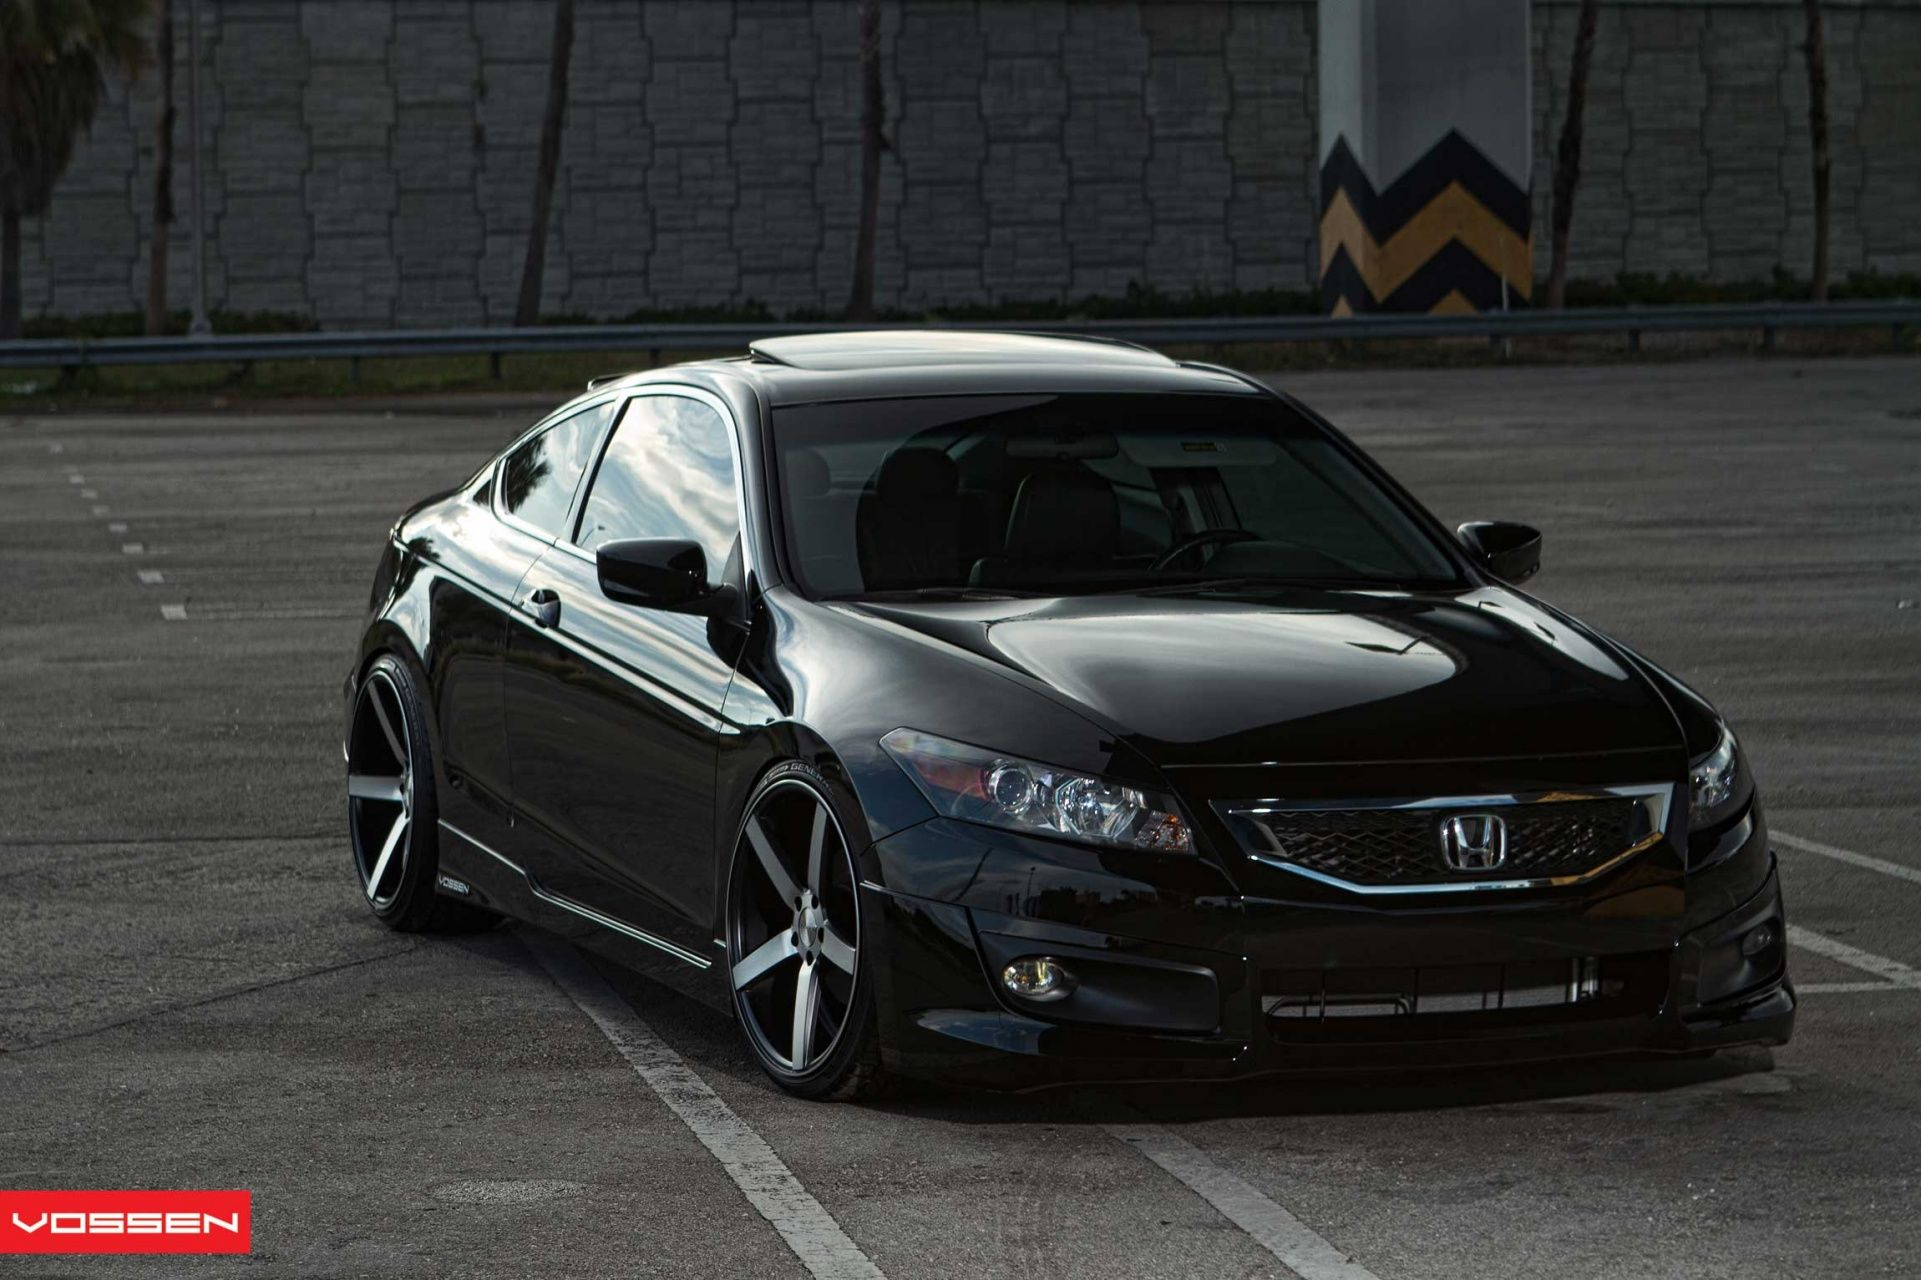 Image for honda accord coupe 2010 slammed cars pinterest honda accord coupe accord coupe and honda accord